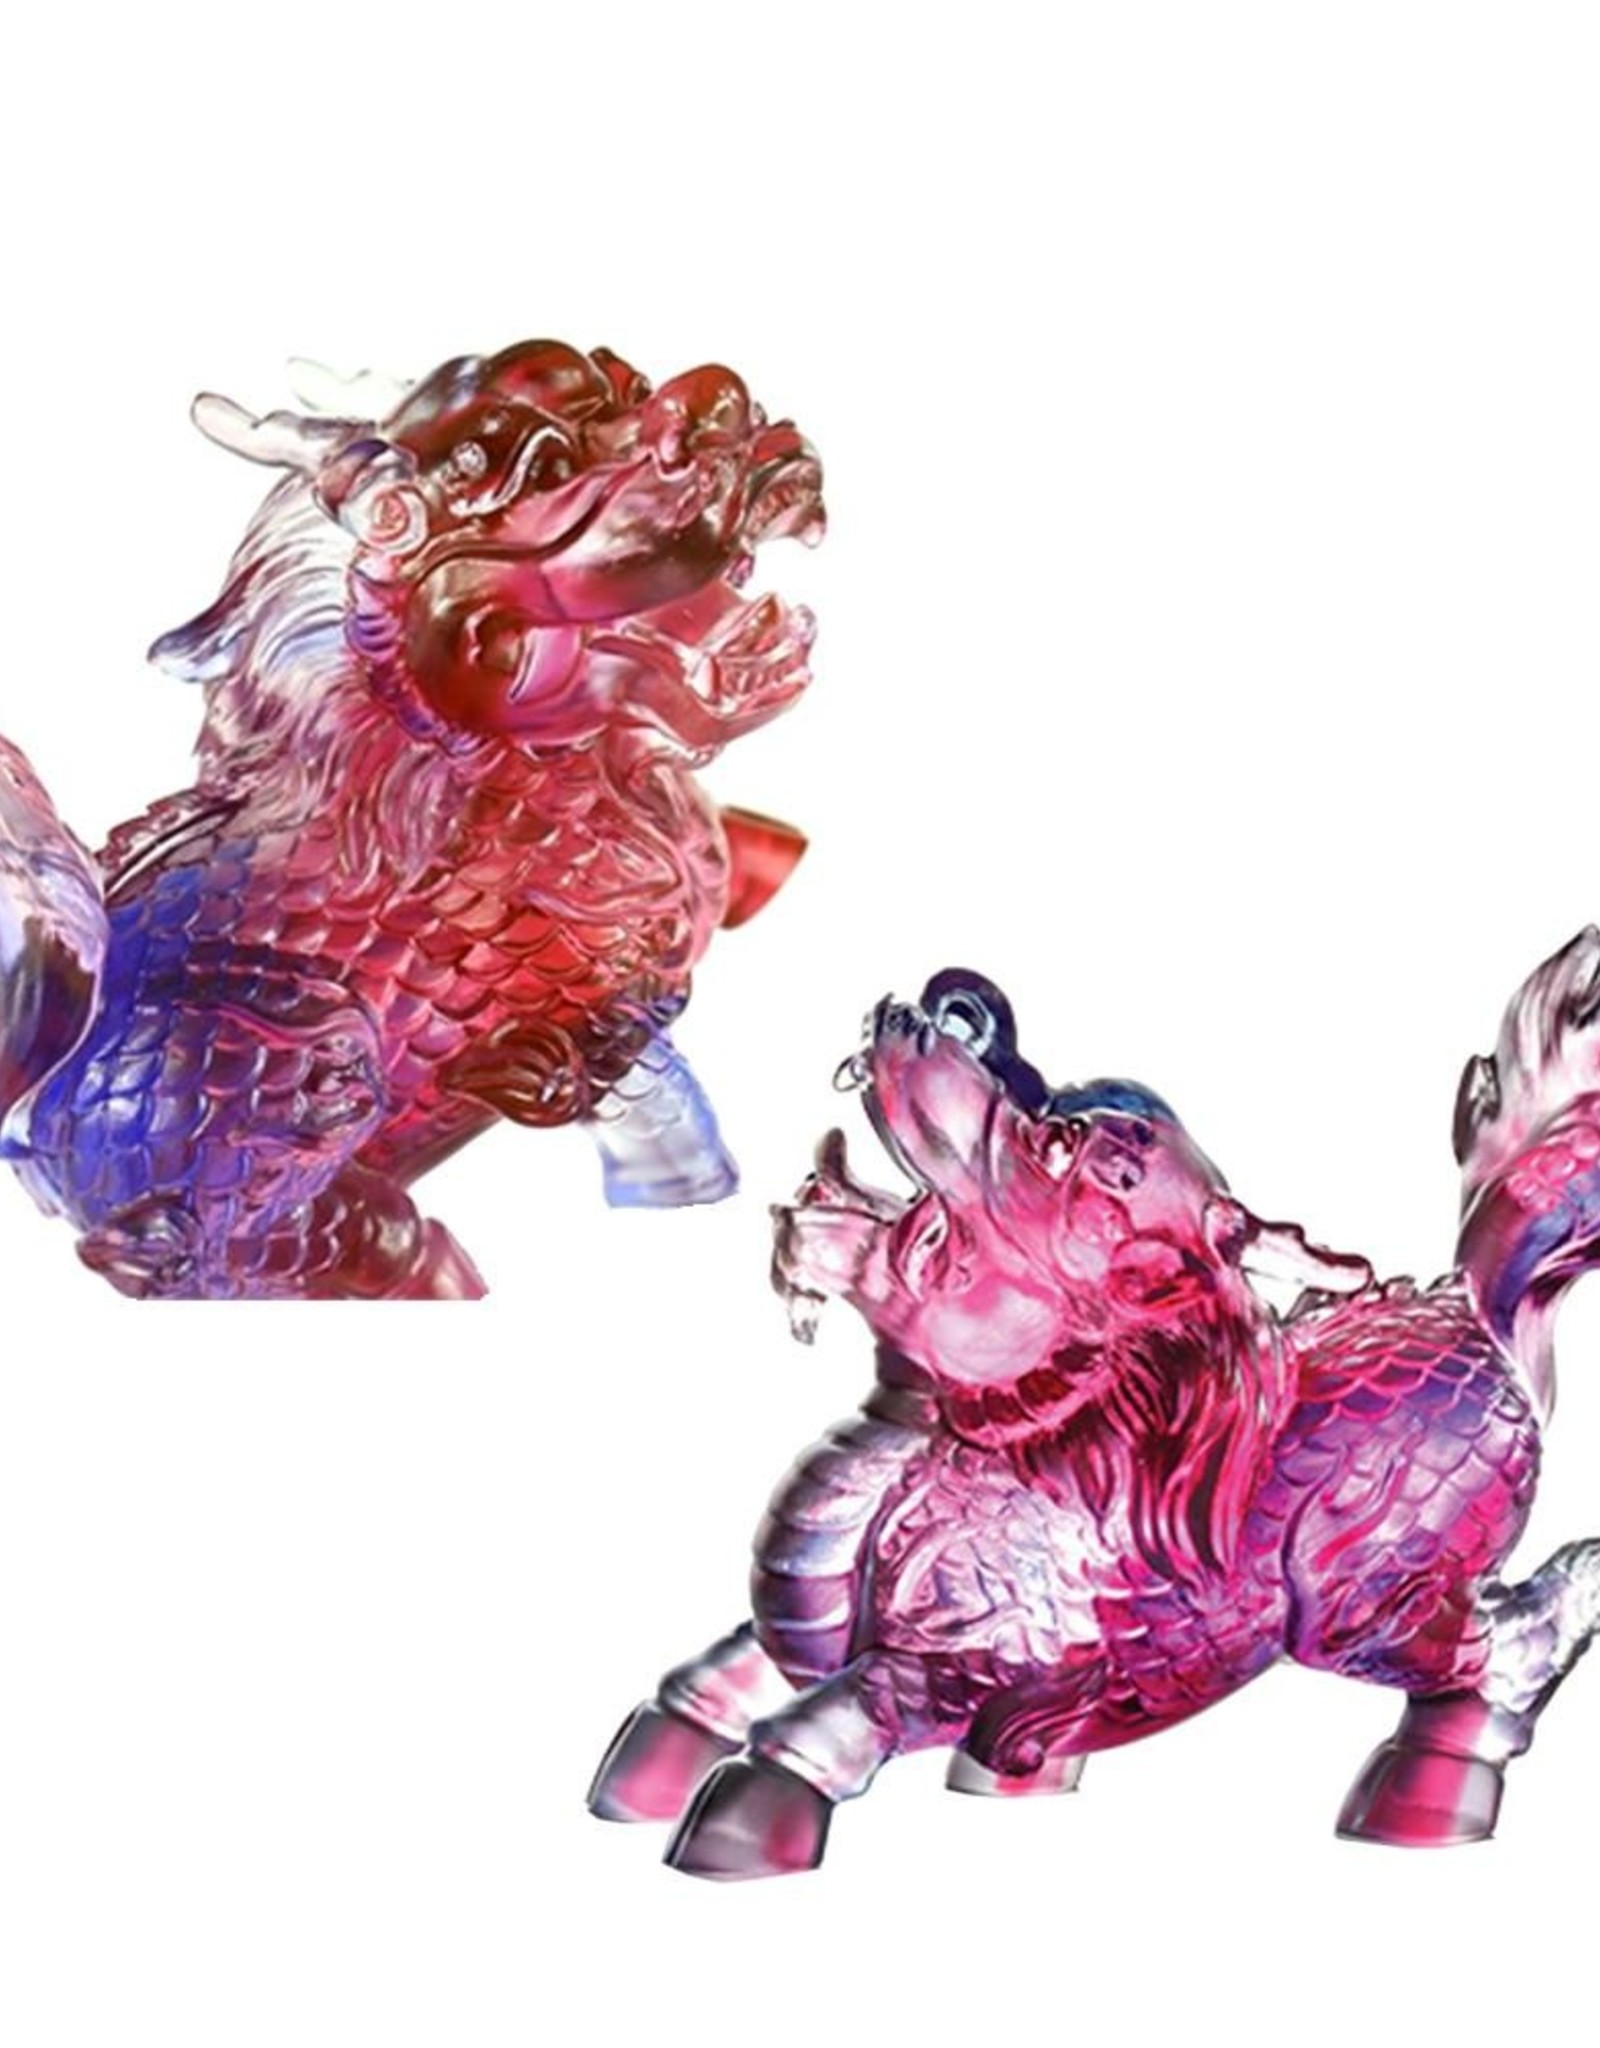 LIULI Crystal Art Crystal Qilin Feng Shui Guardians, Set of 2, Gold Red & Blue Clear  (Limited Edition)